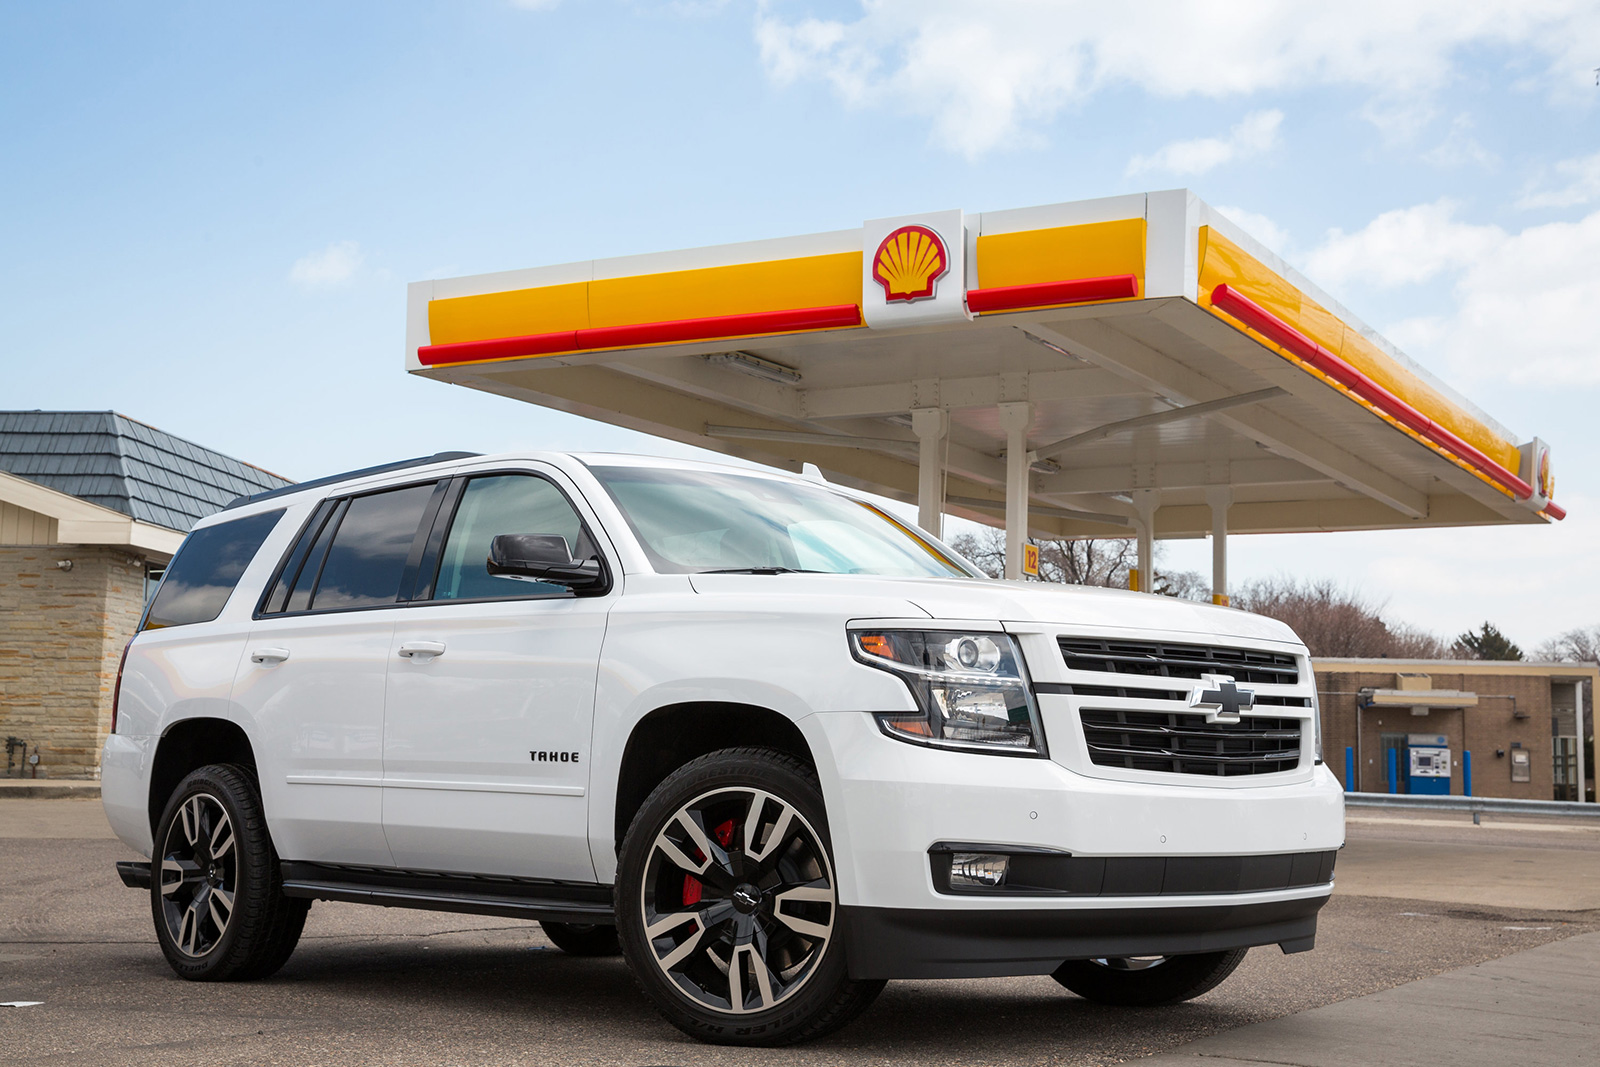 Pay Shell Credit Card >> Chevy, Shell Deliver In-Car Fuel Payment Service » AutoGuide.com News